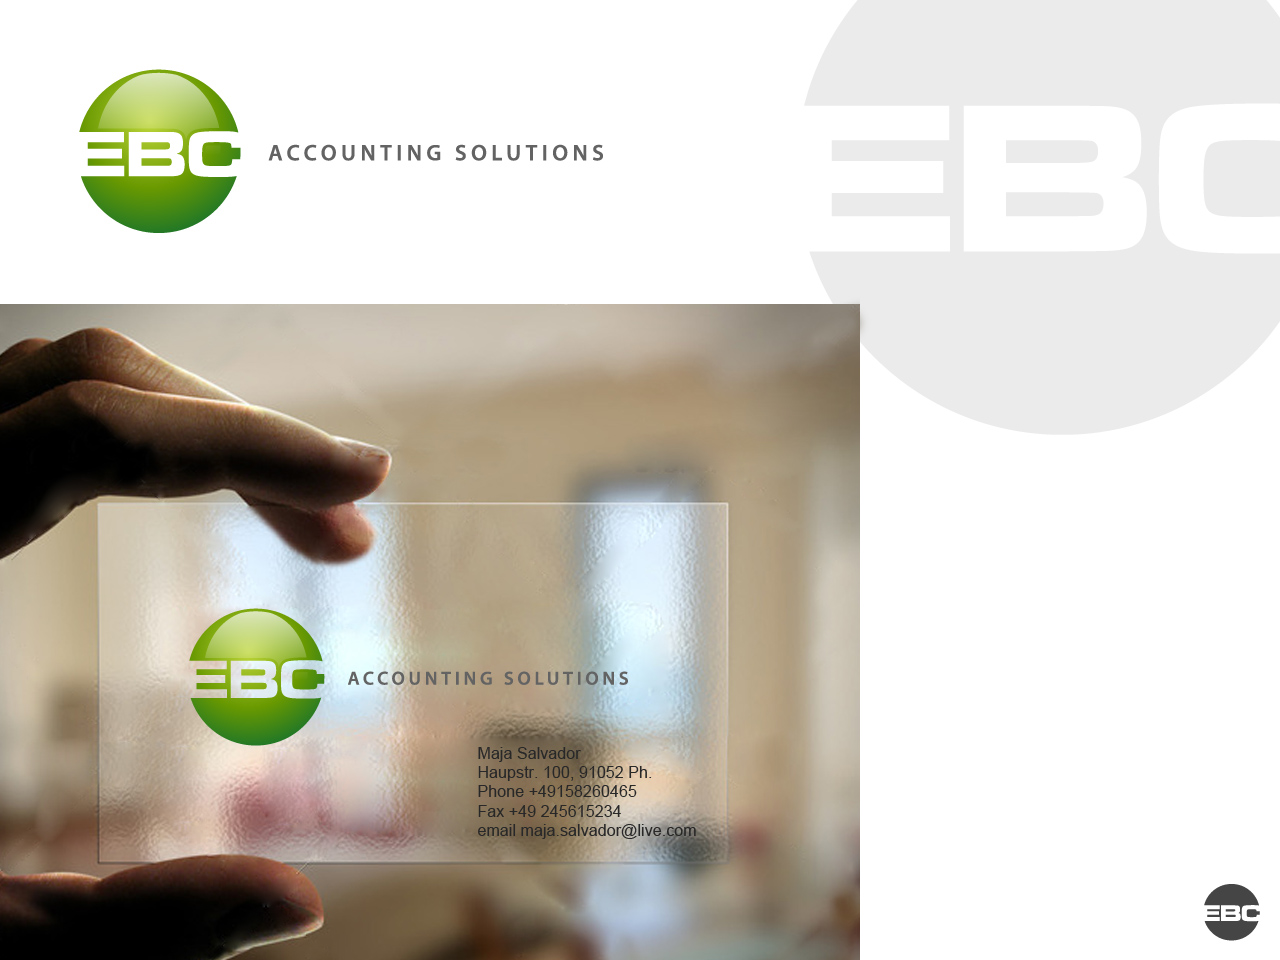 Logo Design by jpbituin - Entry No. 86 in the Logo Design Contest New Logo Design for EBC Accounting Solutions.